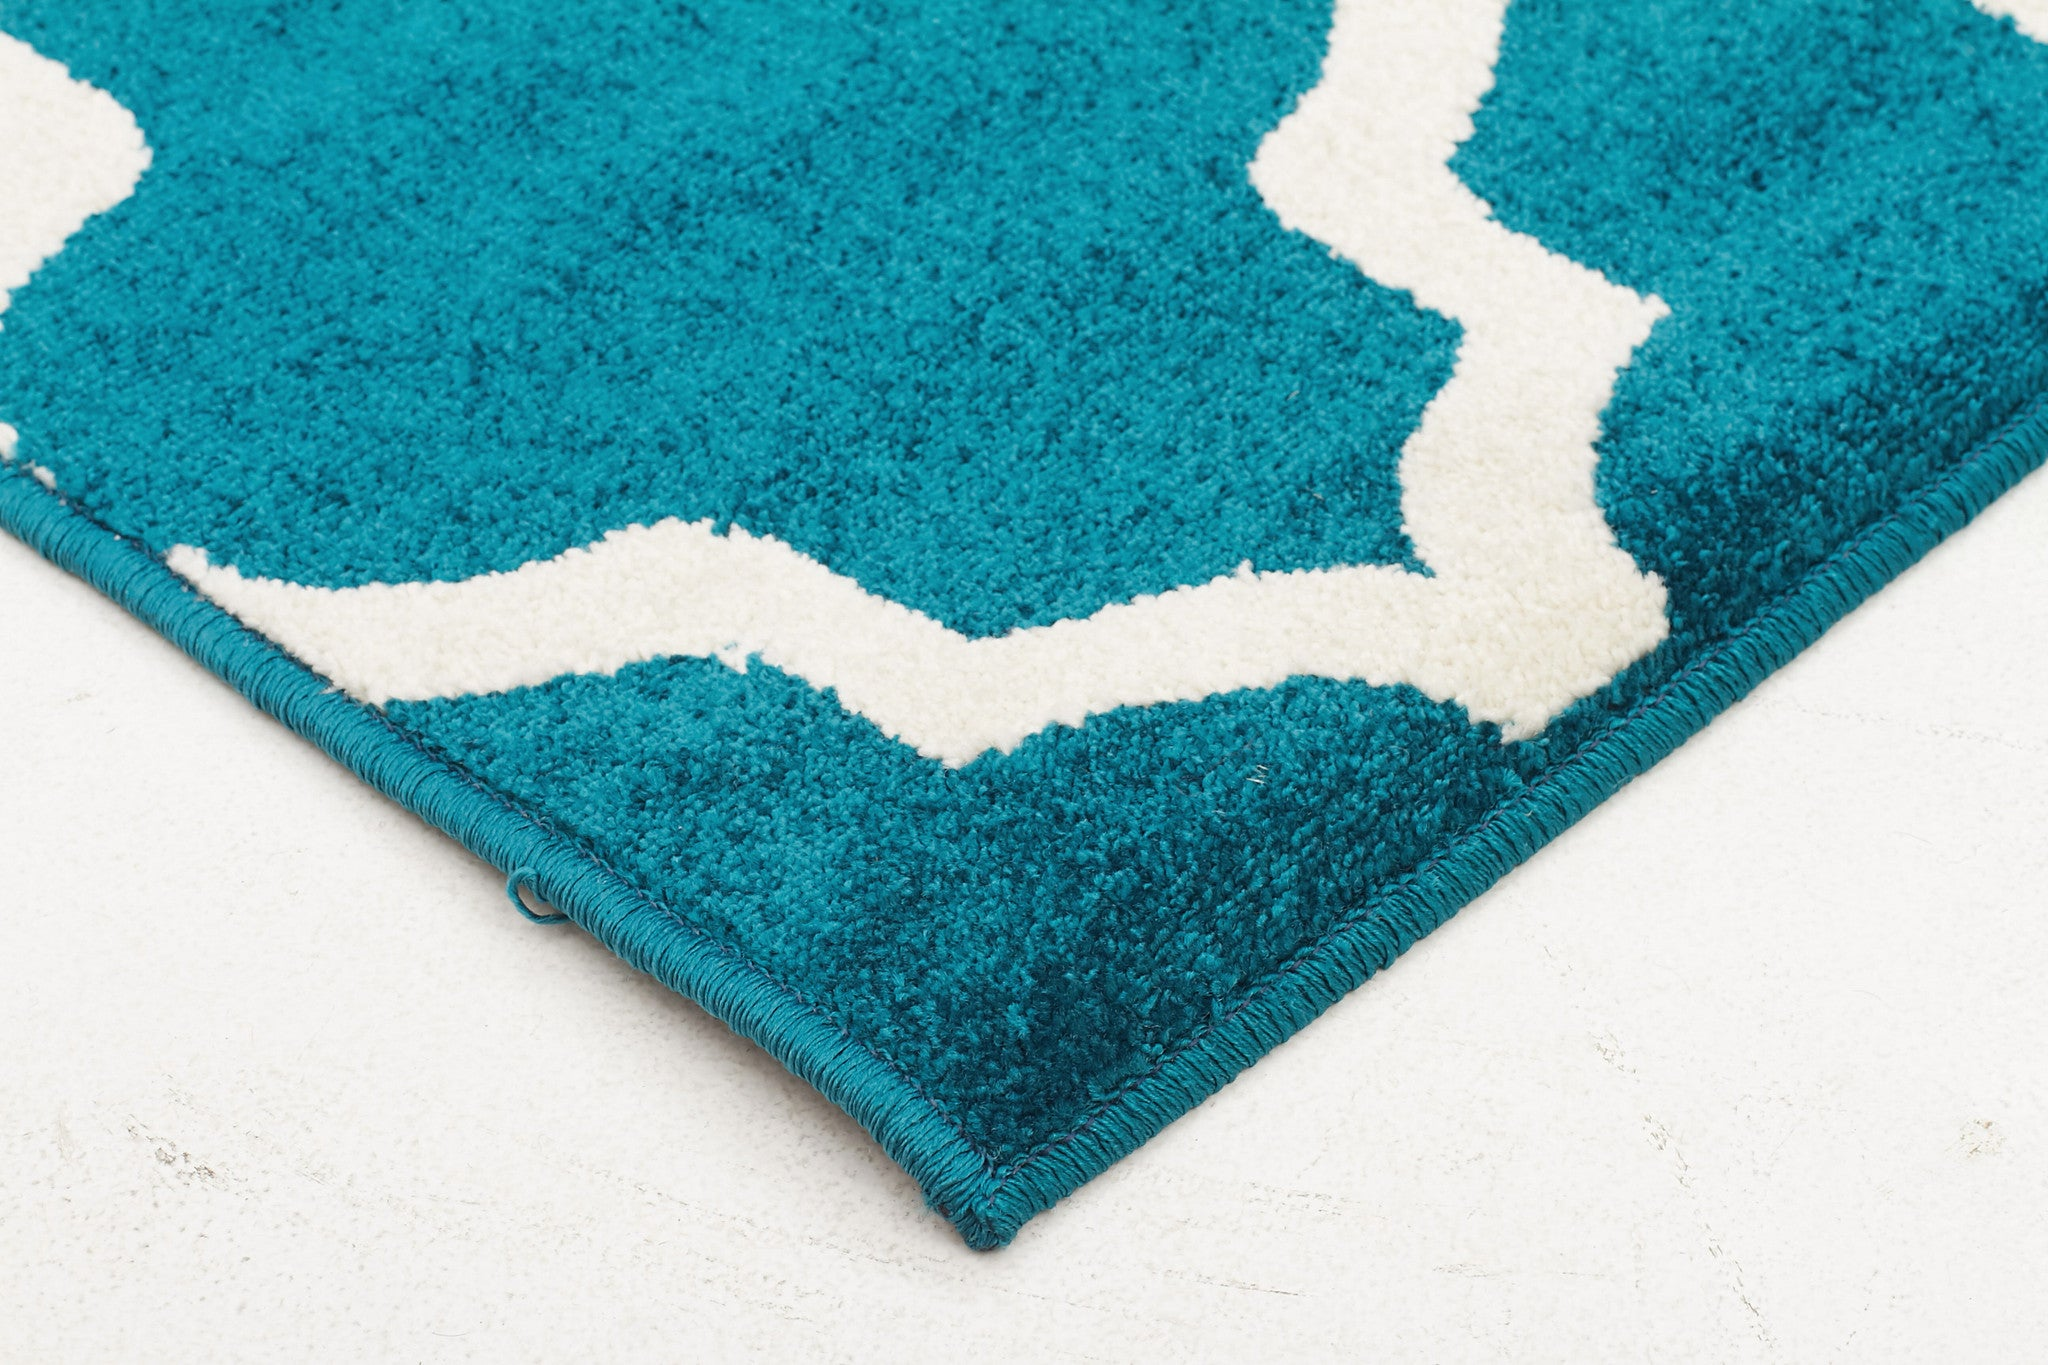 Marquee 310 Rug - Peacock Blue